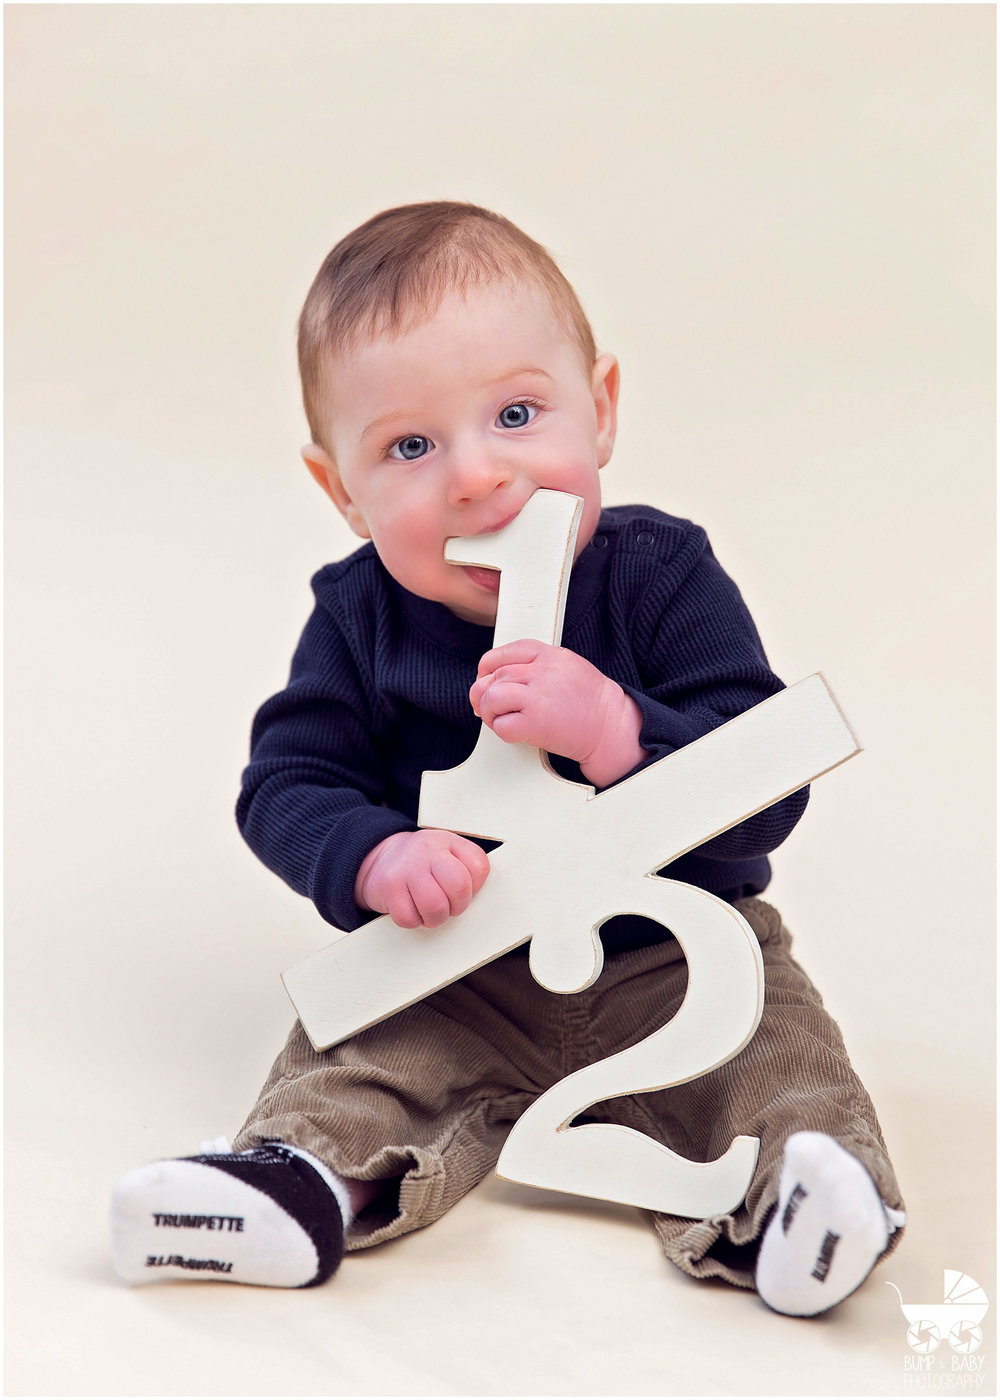 6-Month-Old-Baby-Boy-chewing-on-half-sign.jpg